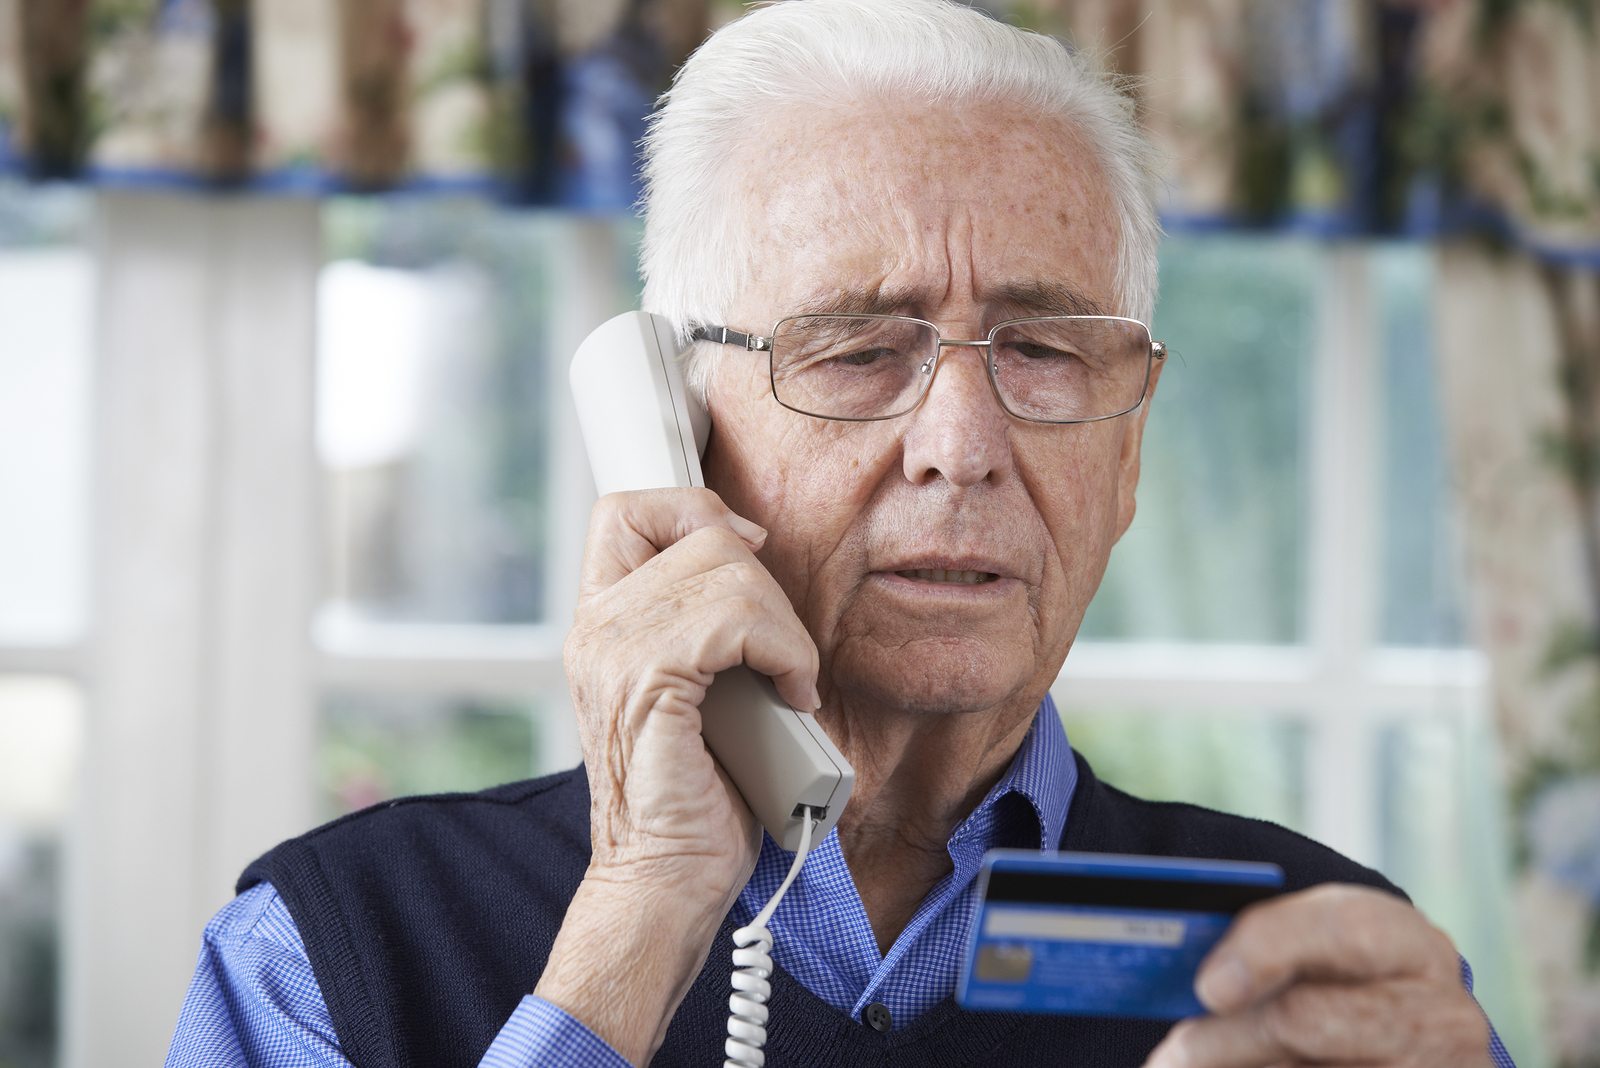 How to Safe Guard Seniors from Work-at-Home Con Artists